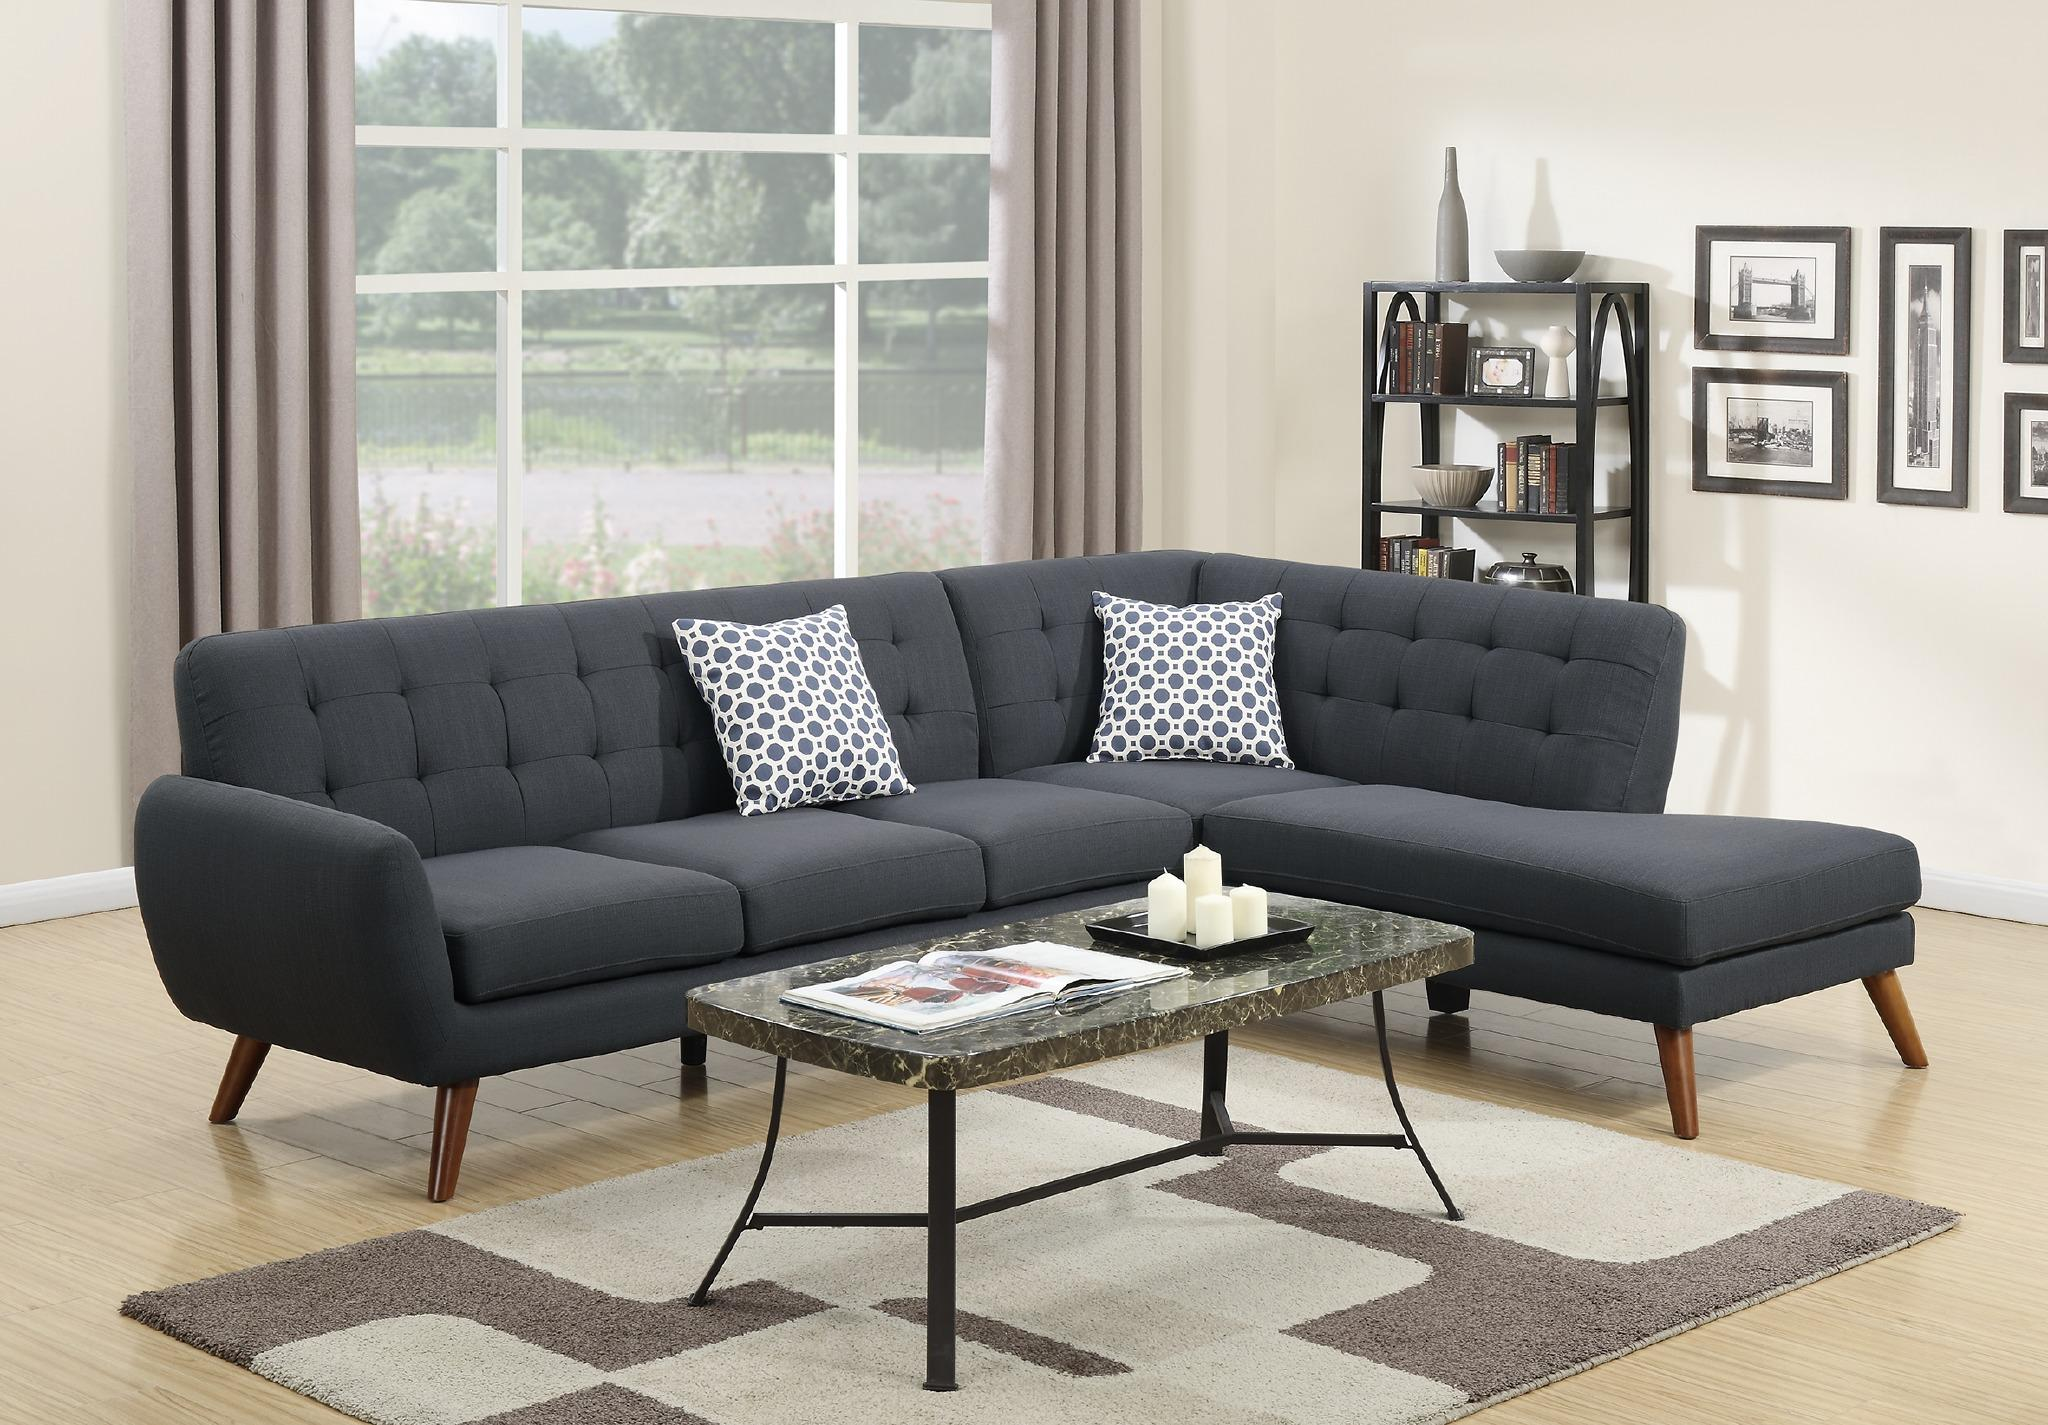 sofa gotham fabric designs room sectional new amazon set piece of charcoal living